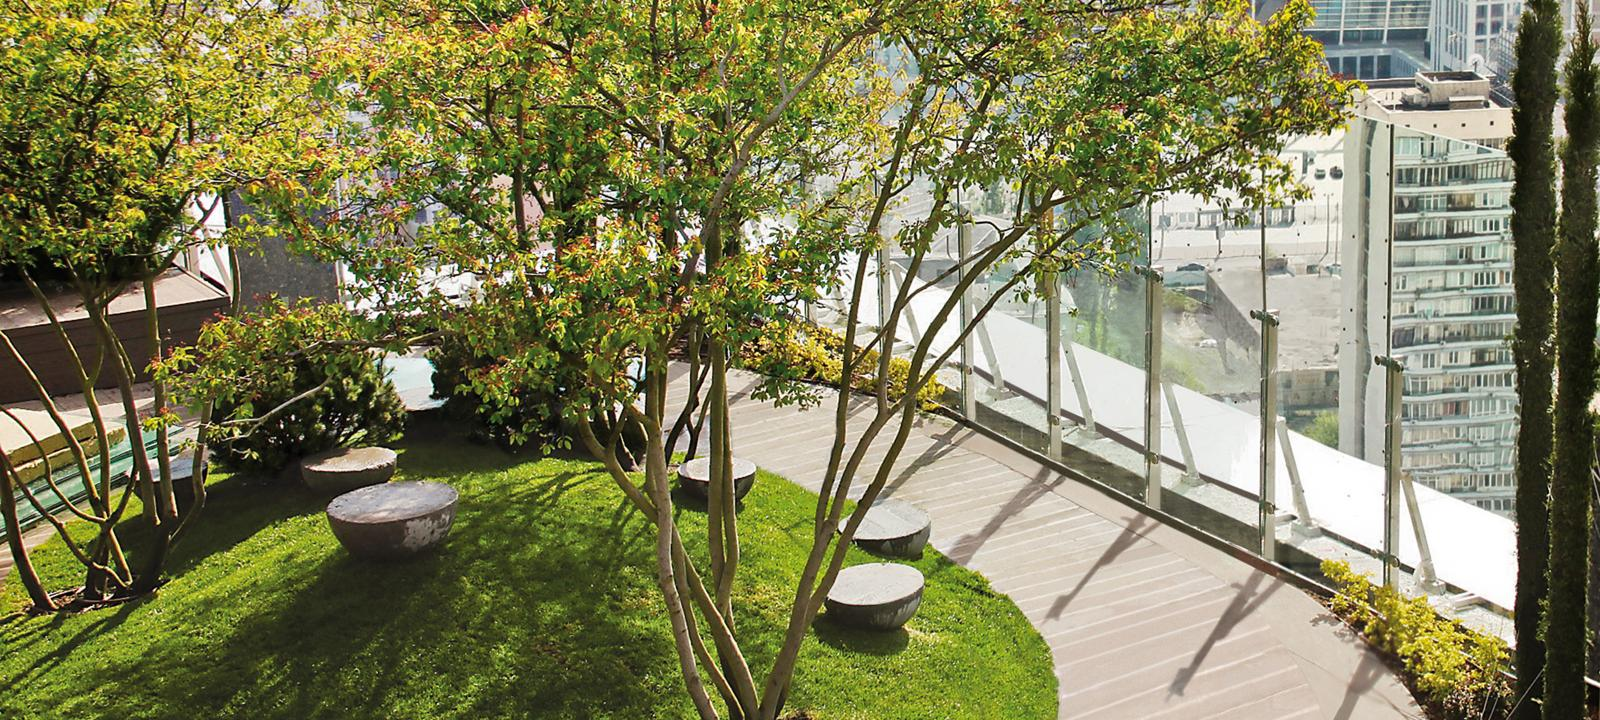 Roof garden with circular lawn patch and trees